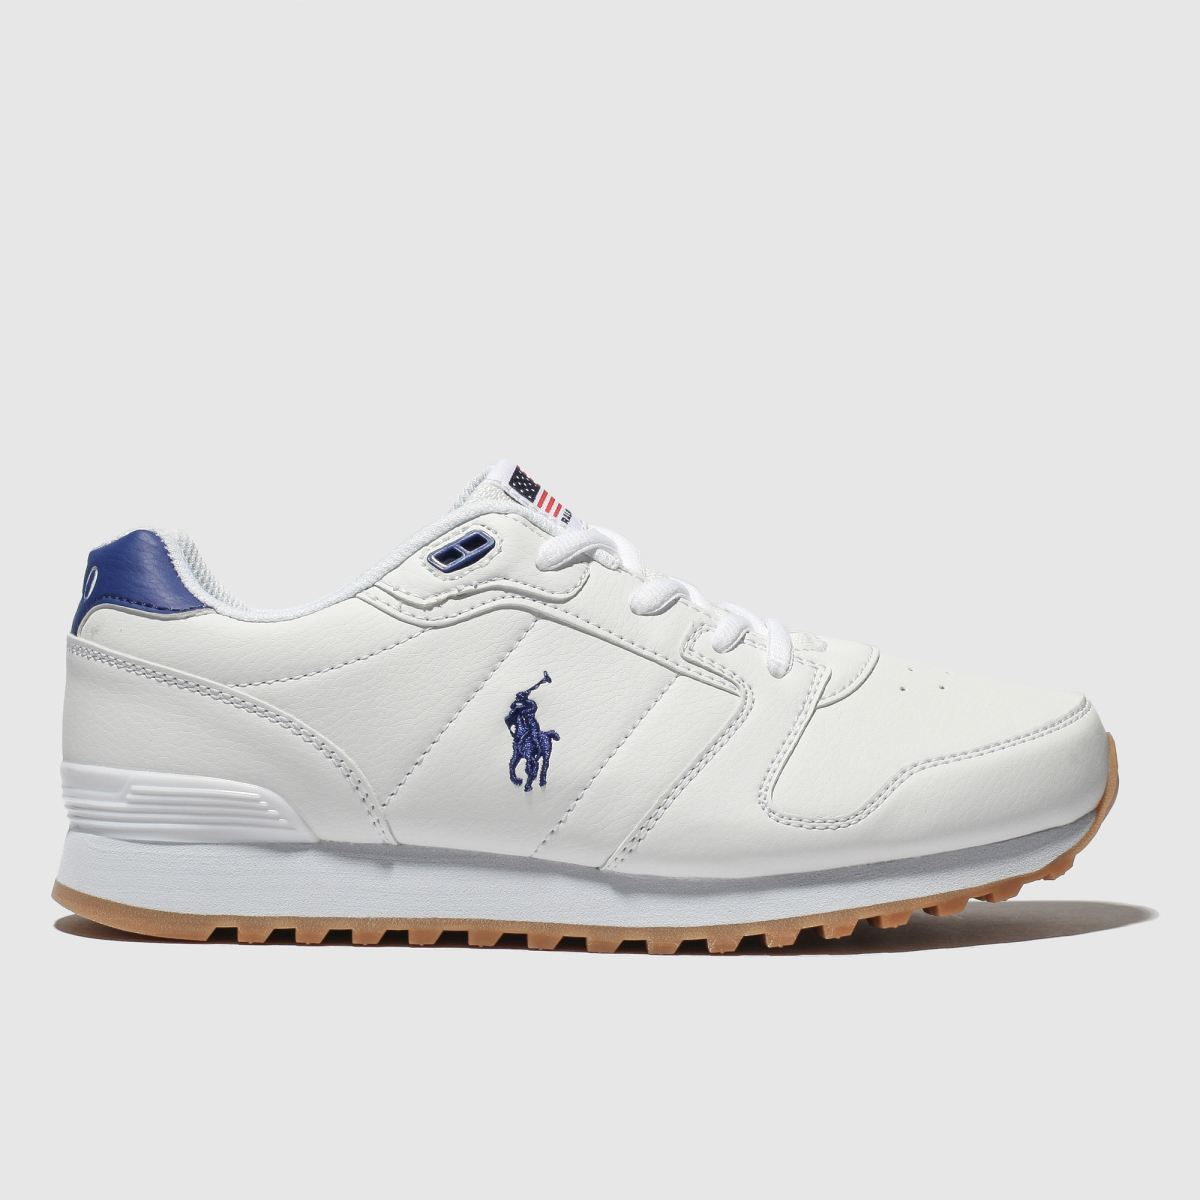 Polo Ralph Lauren White & Navy Oryon Shoes Youth